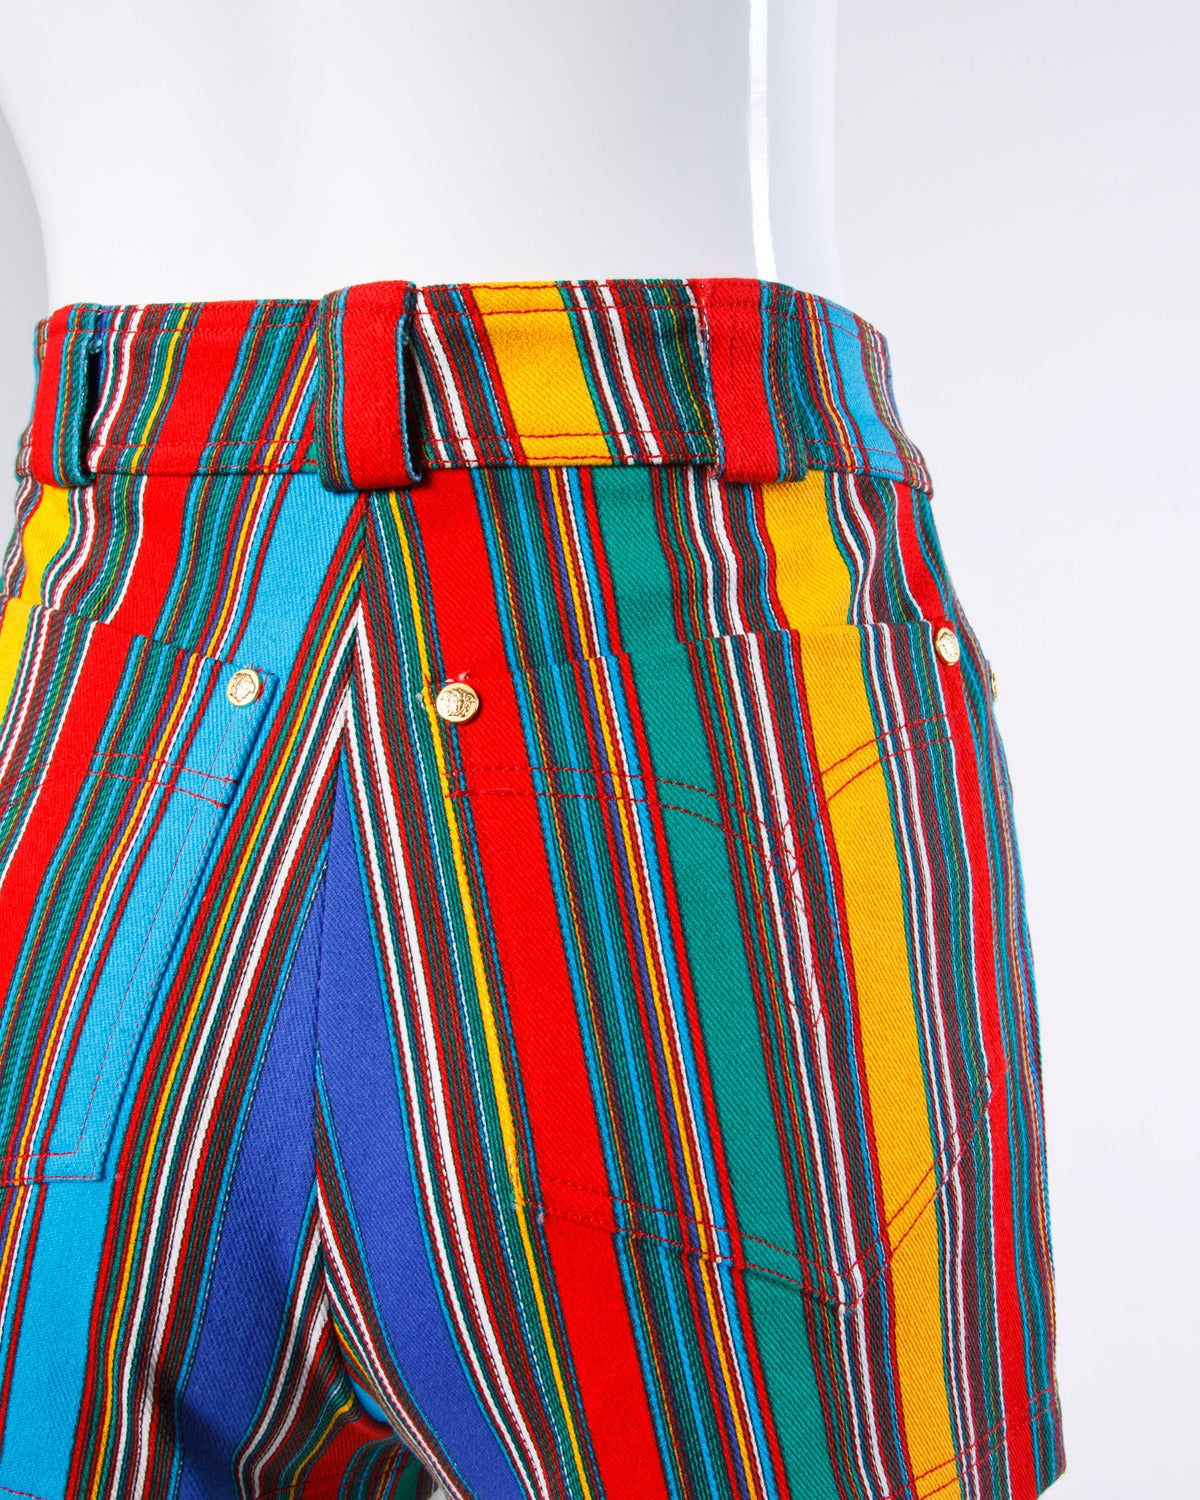 Women's 1993 Unworn Gianni Versace Couture Vintage Shorts as Worn by Naomi Campbell For Sale